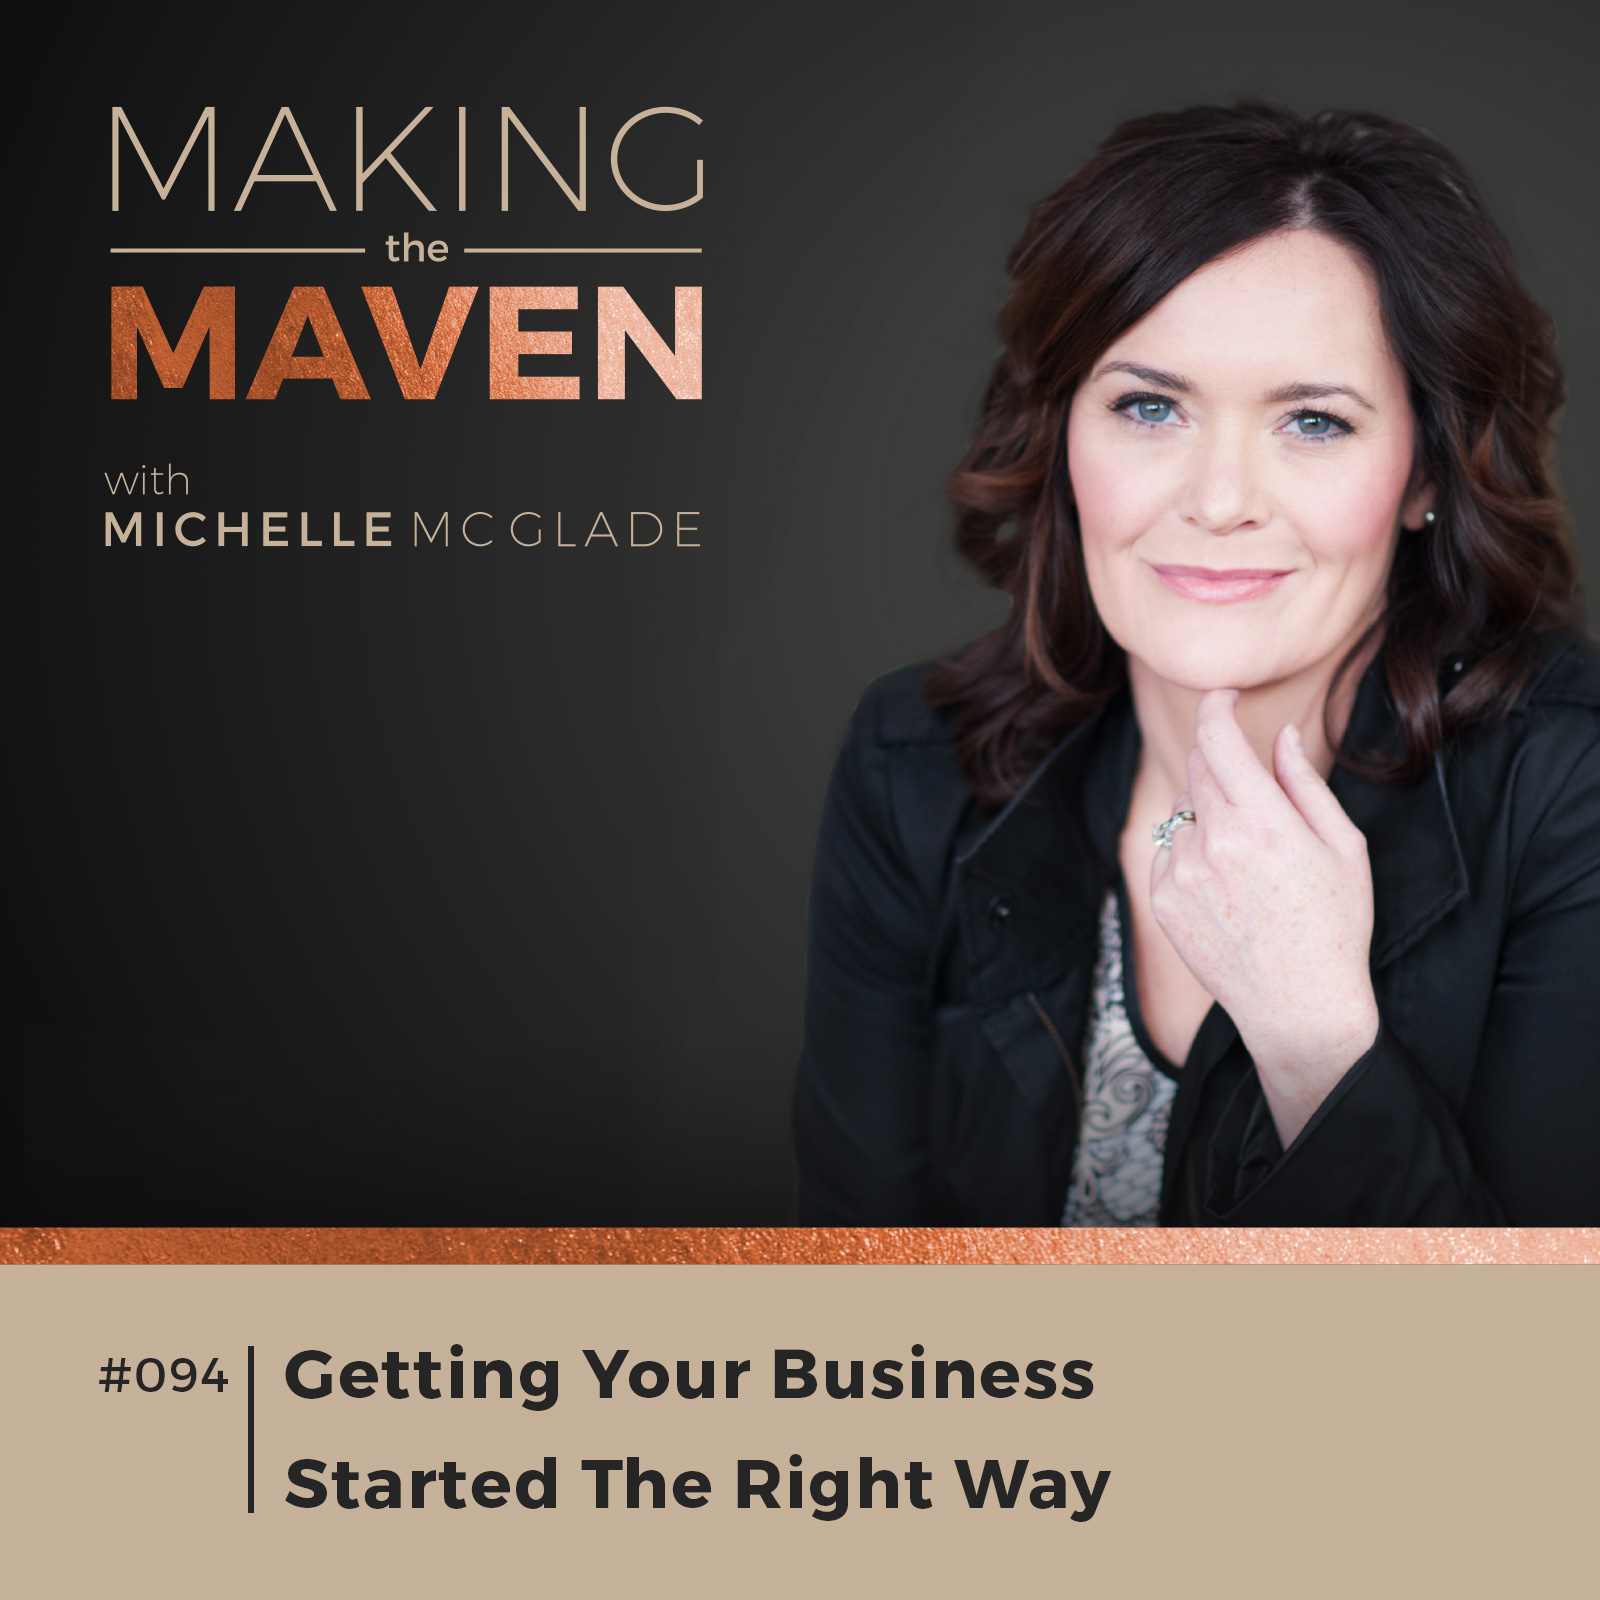 Getting Your Business Started The Right Way